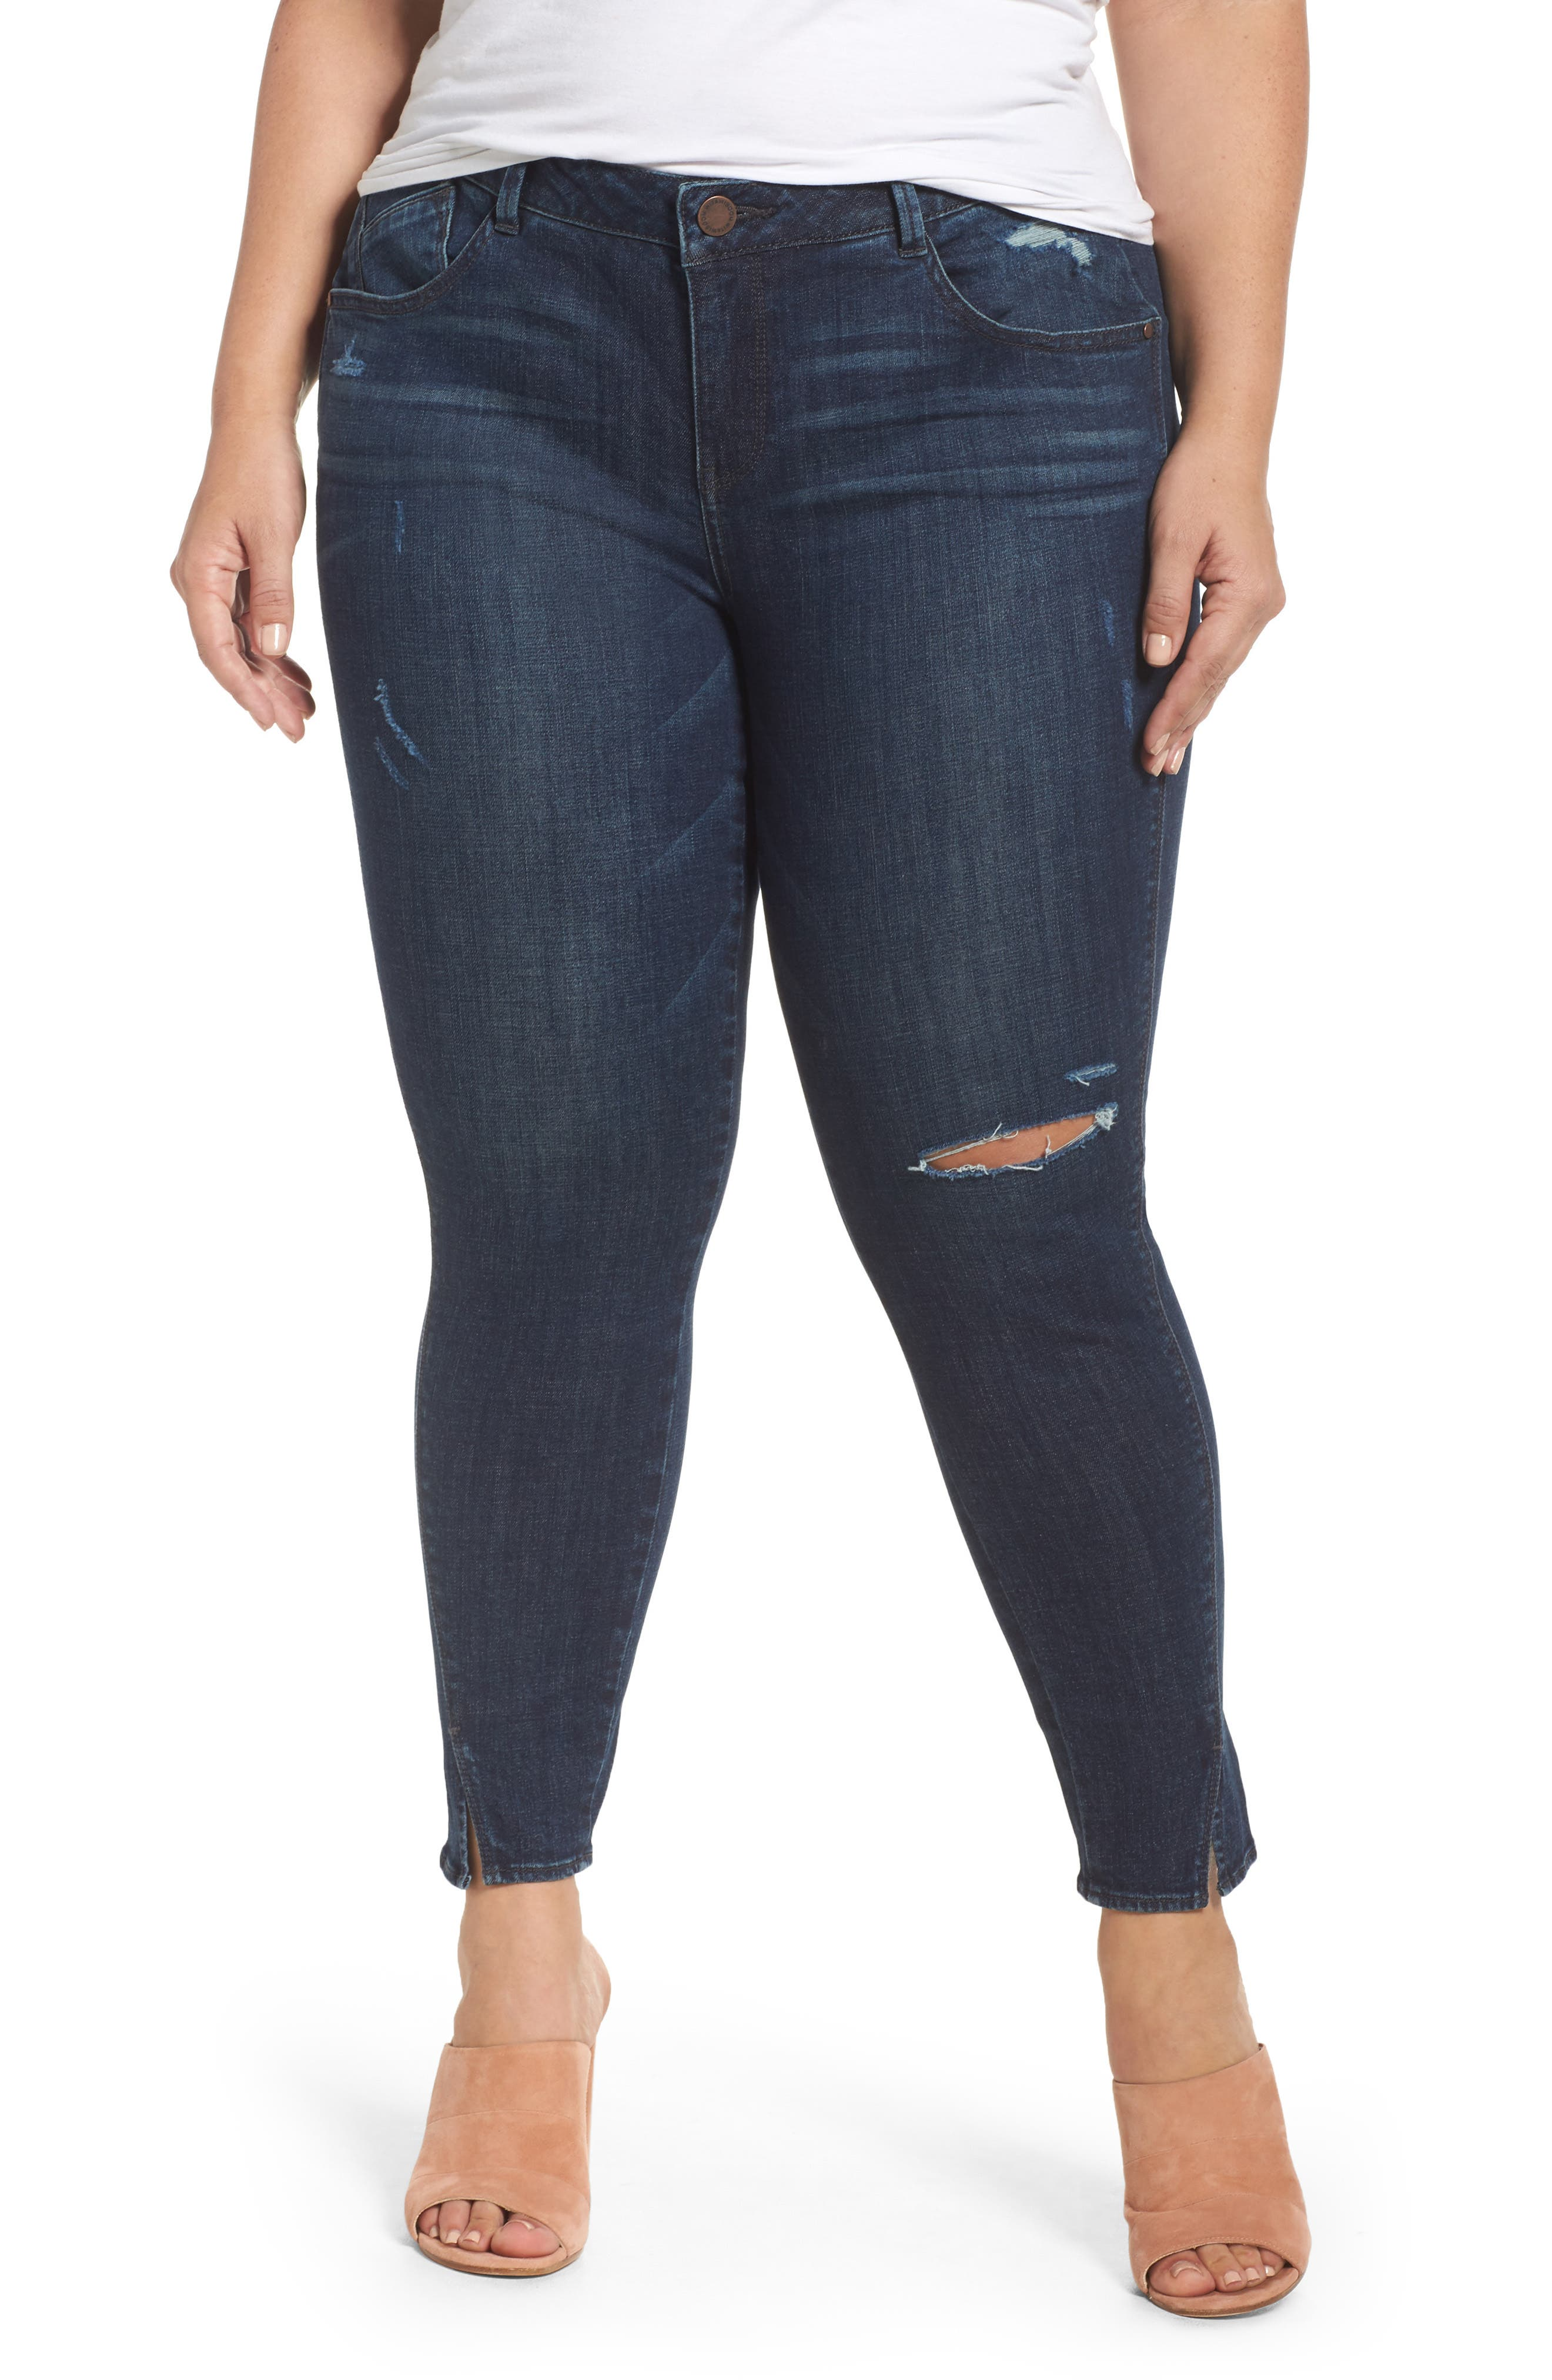 Twisted Seam Ankle Skimmer Jeans,                         Main,                         color, 402